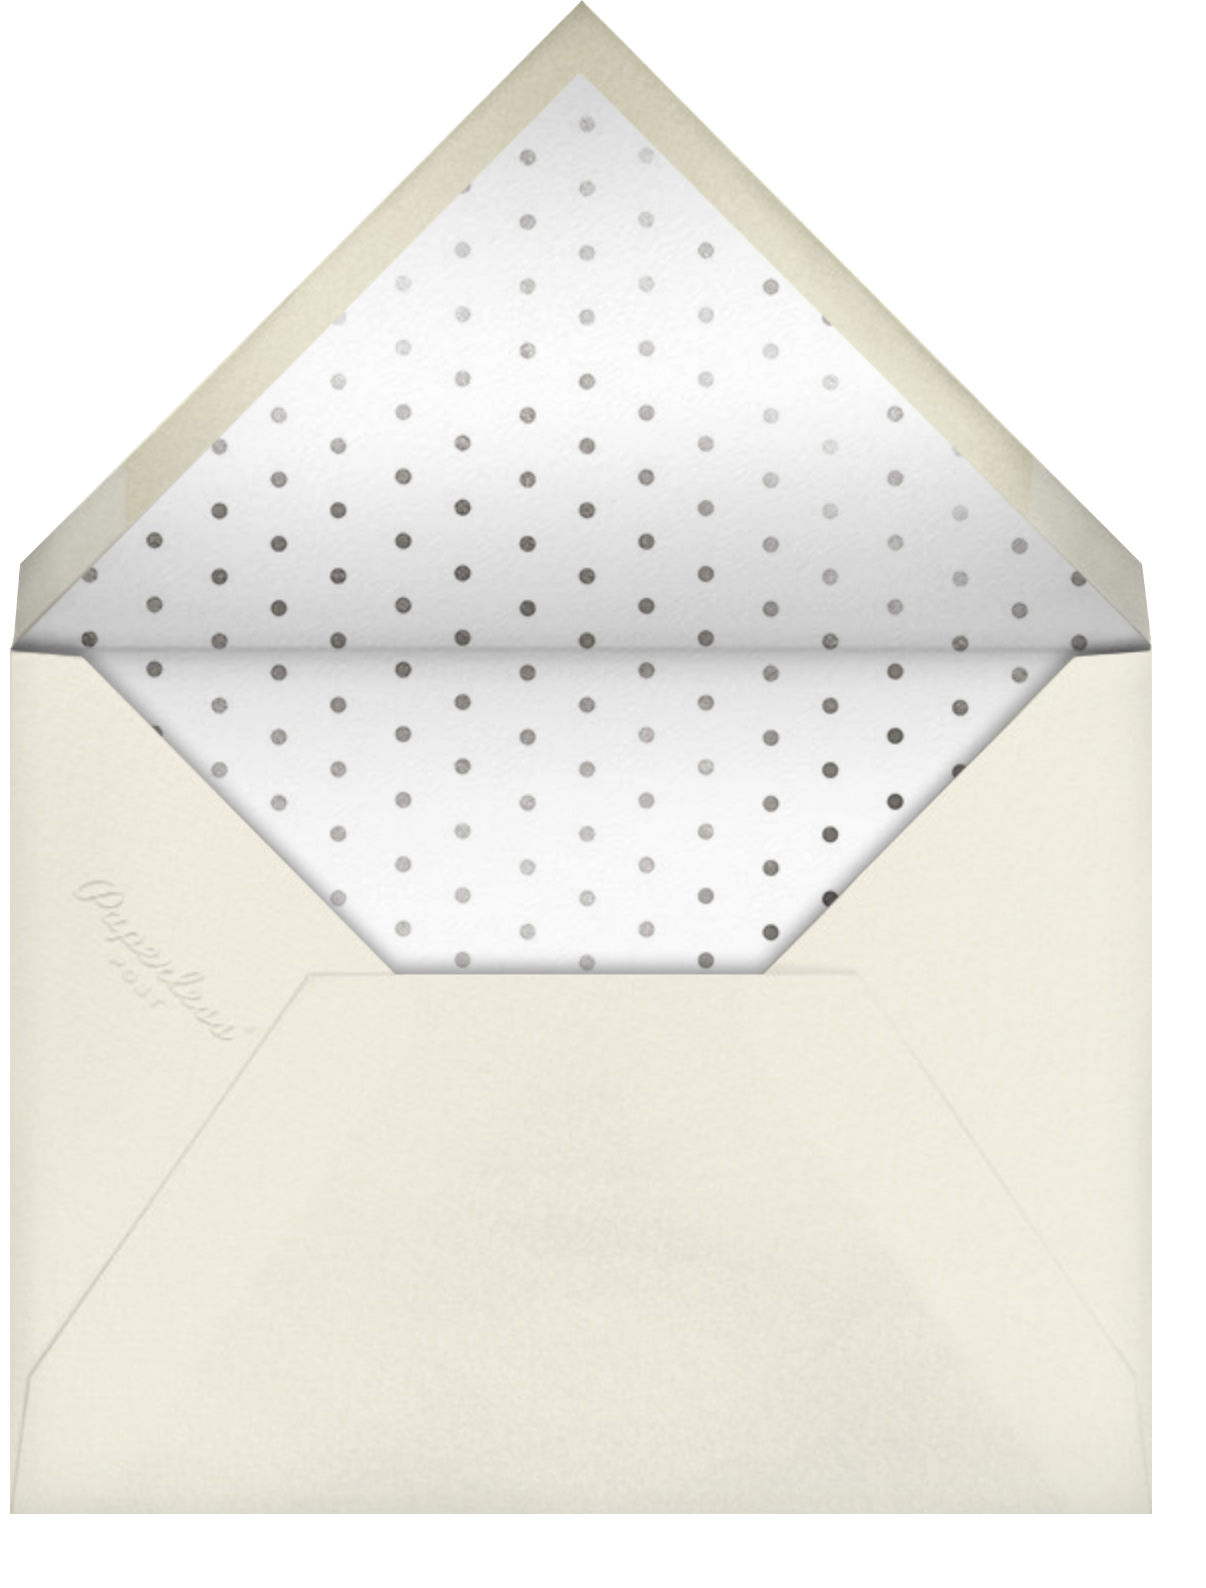 Hey Baby - kate spade new york - Sip and see - envelope back